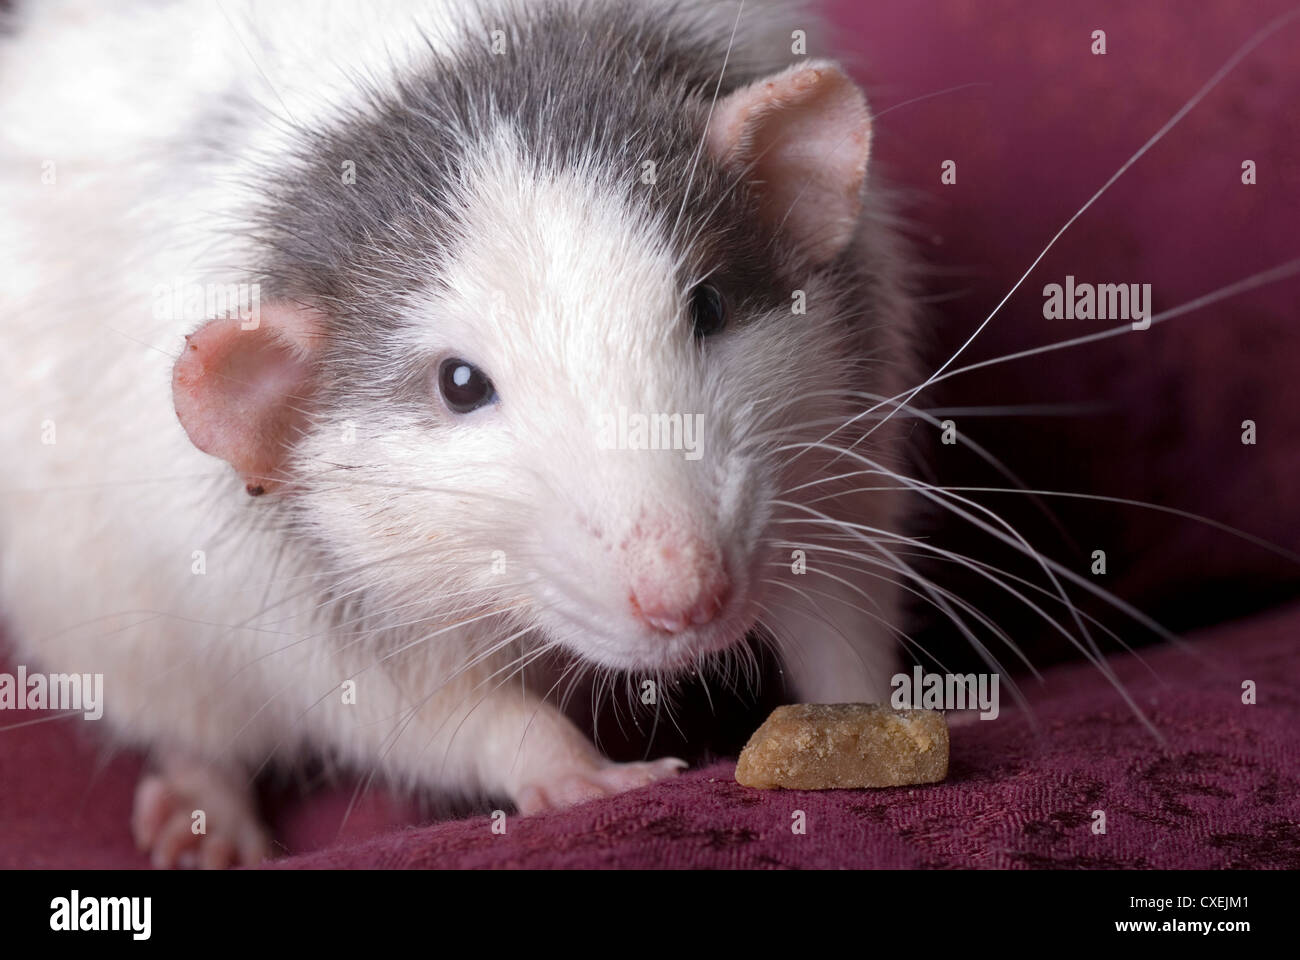 Close up horizontal shot of a domestic gray and white rat looking into the camera. - Stock Image